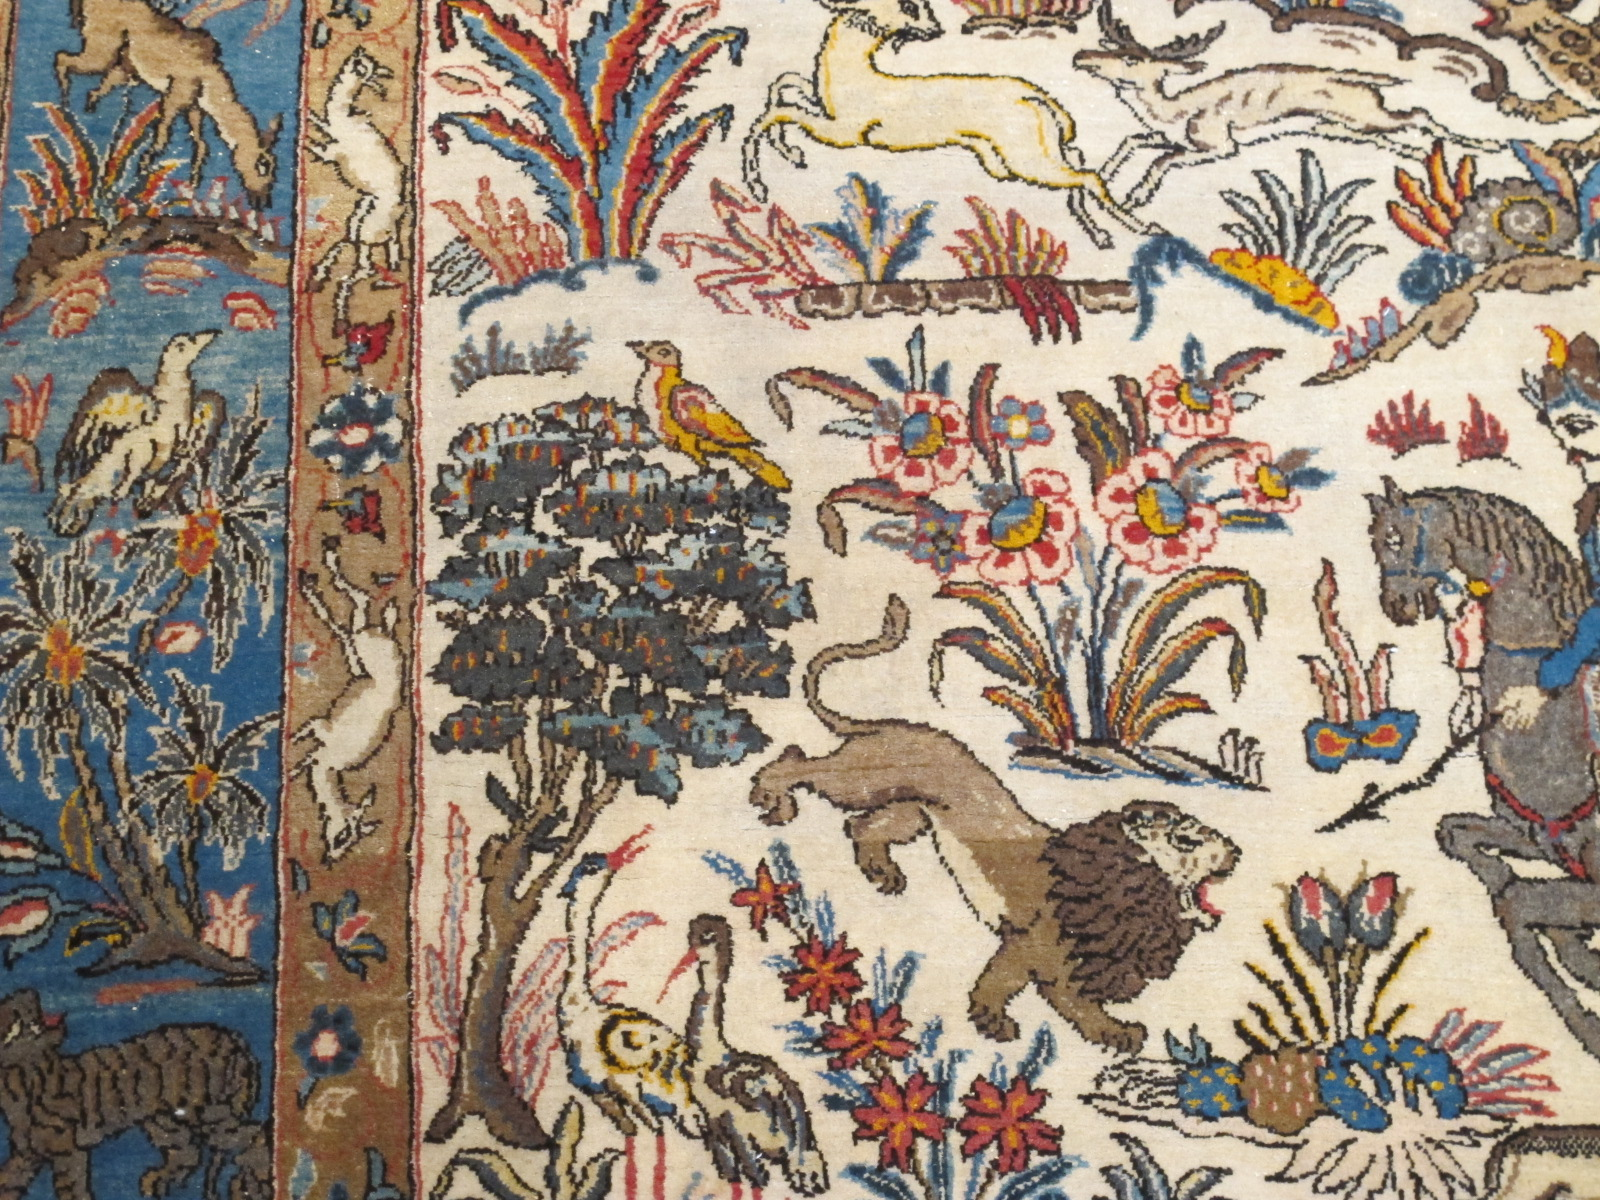 13123-persian-quom-hunting-rug-49-x-74-4